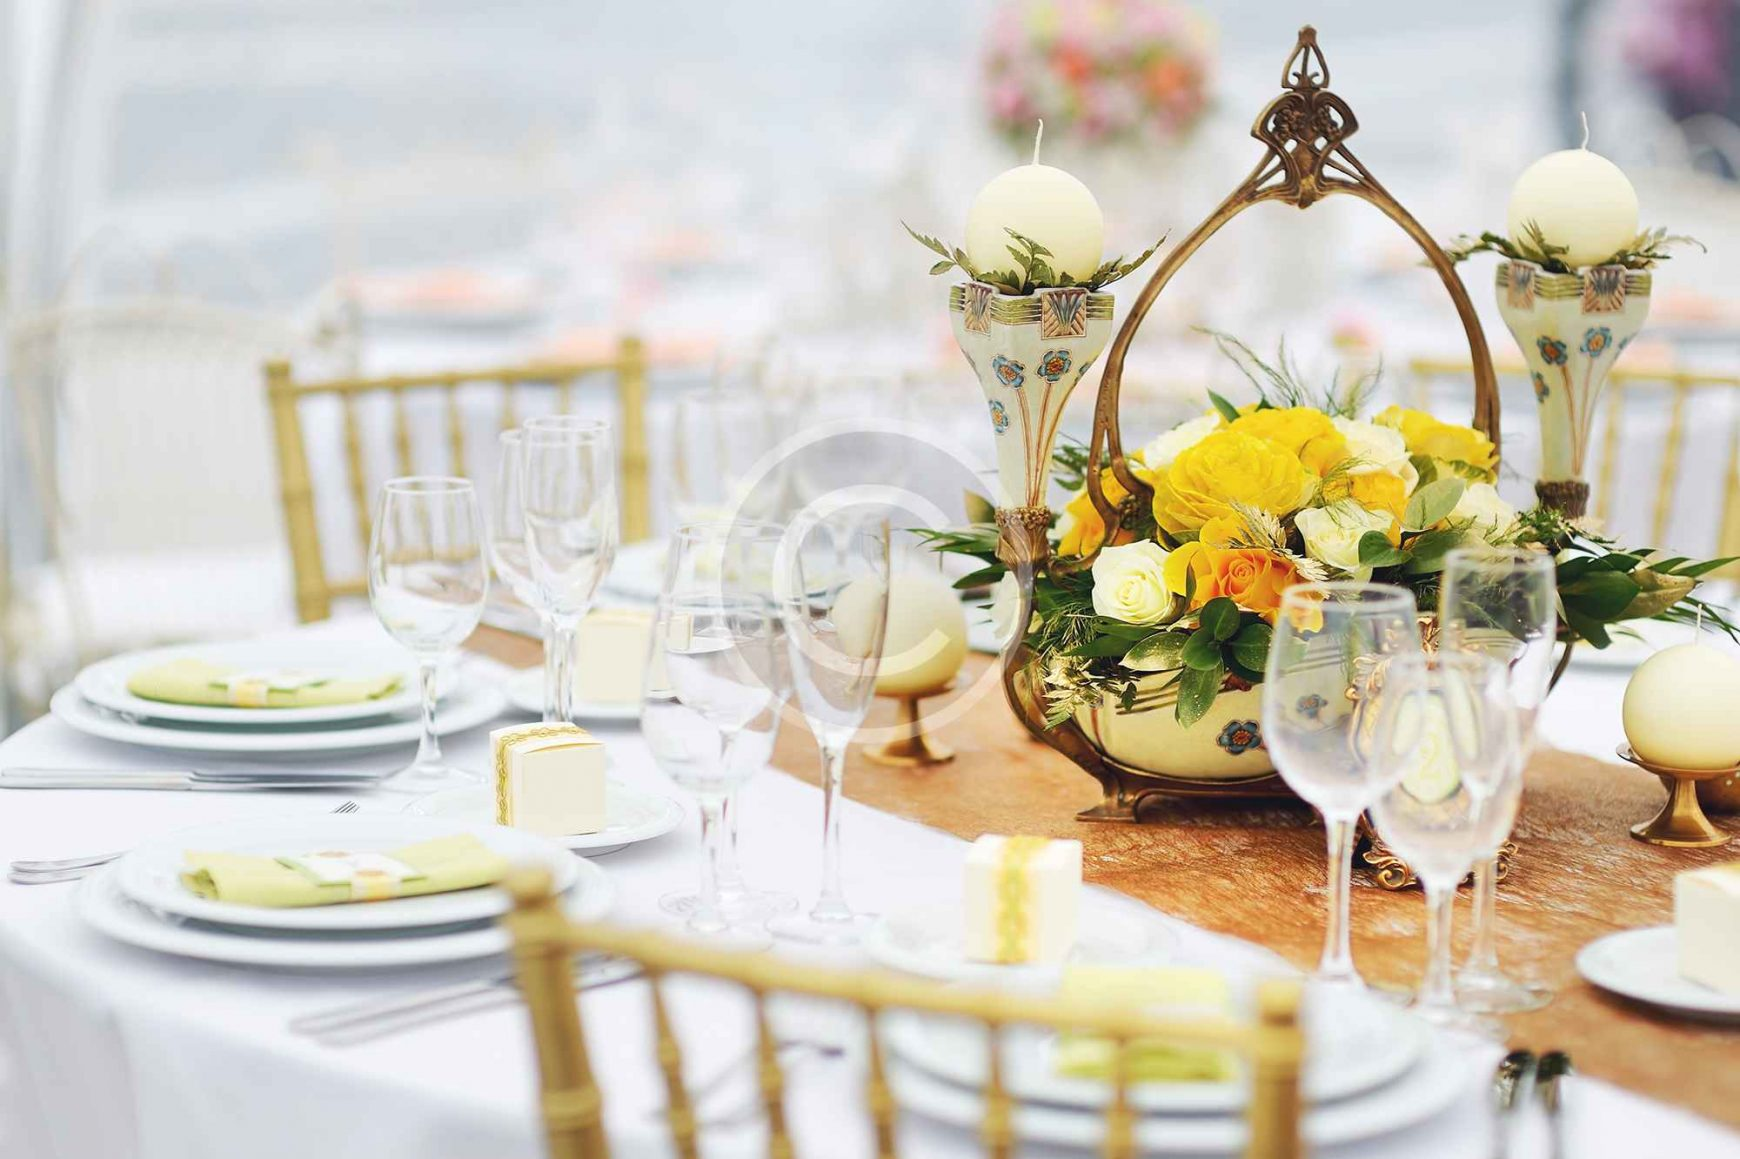 Hiring an Events Planner